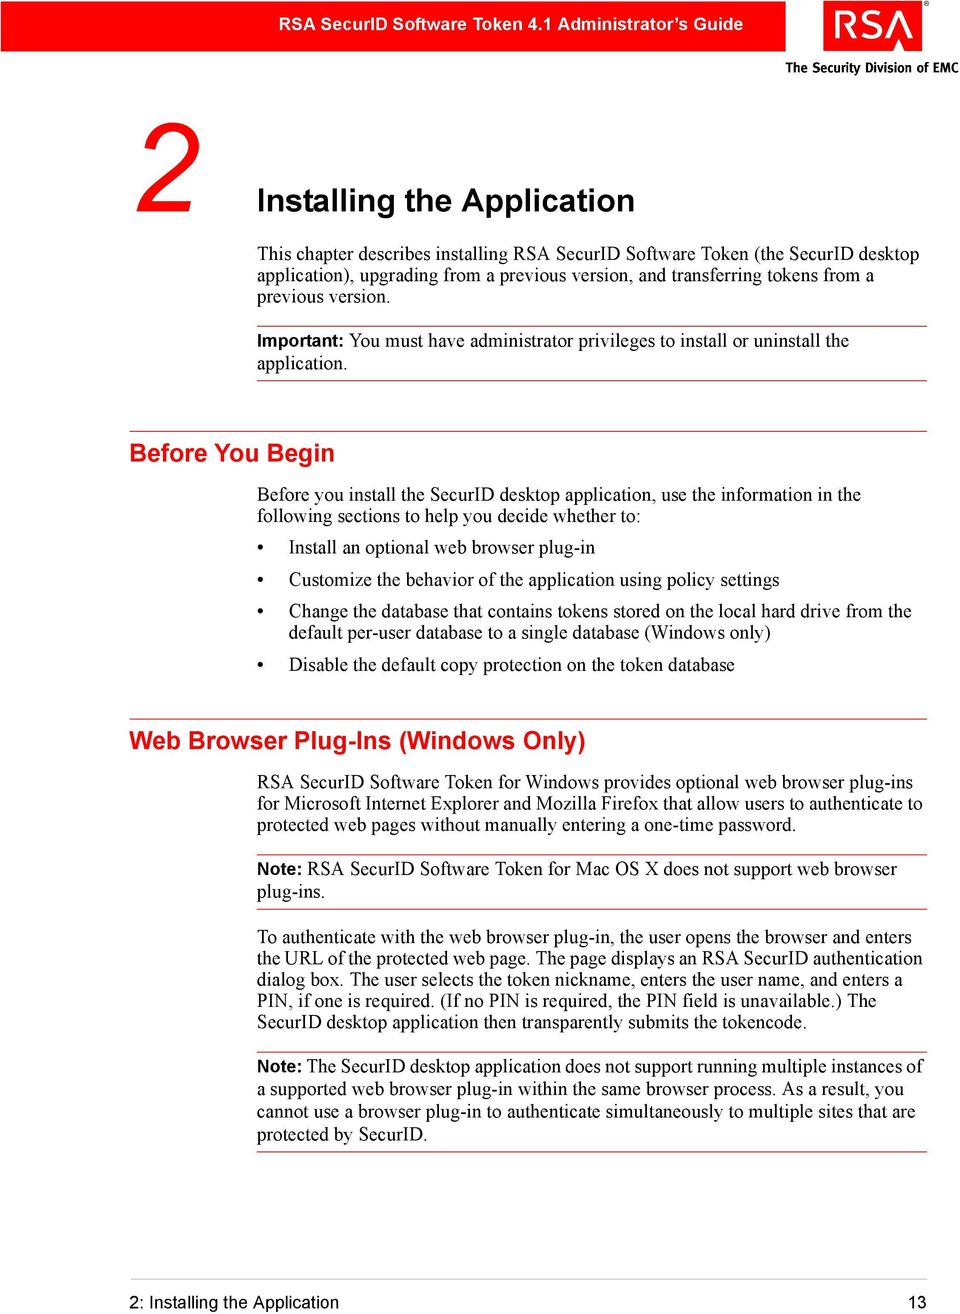 rsa authentication agent installation and configuration guide